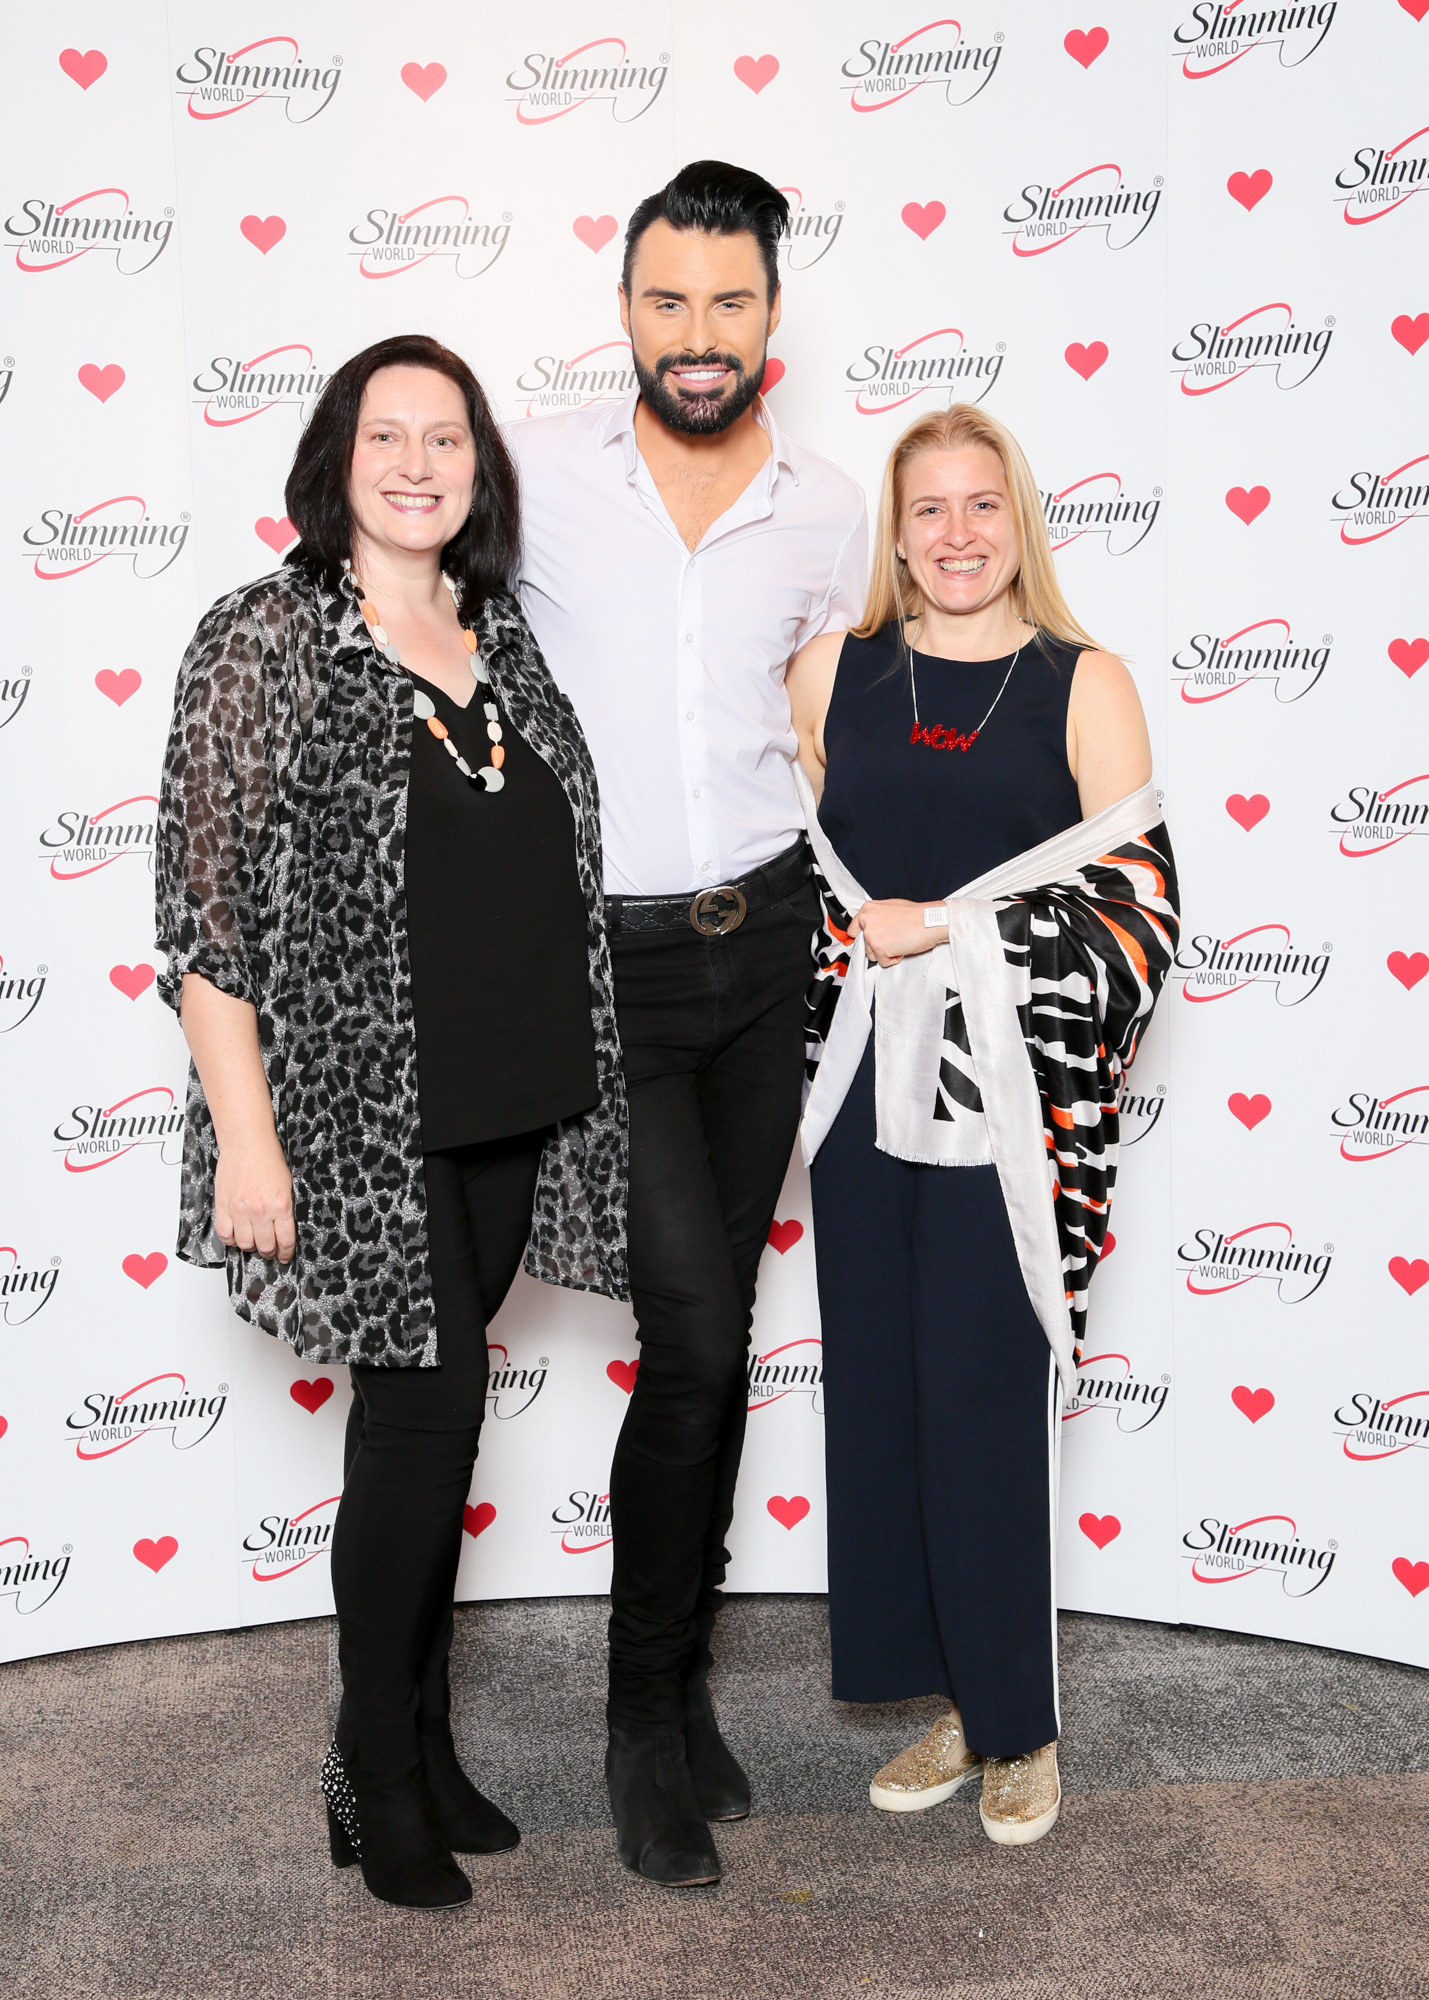 Slimming World Consultants Maria McCracken and Zillah Curtis meet singer and presenter Rylan Clark-Neal.